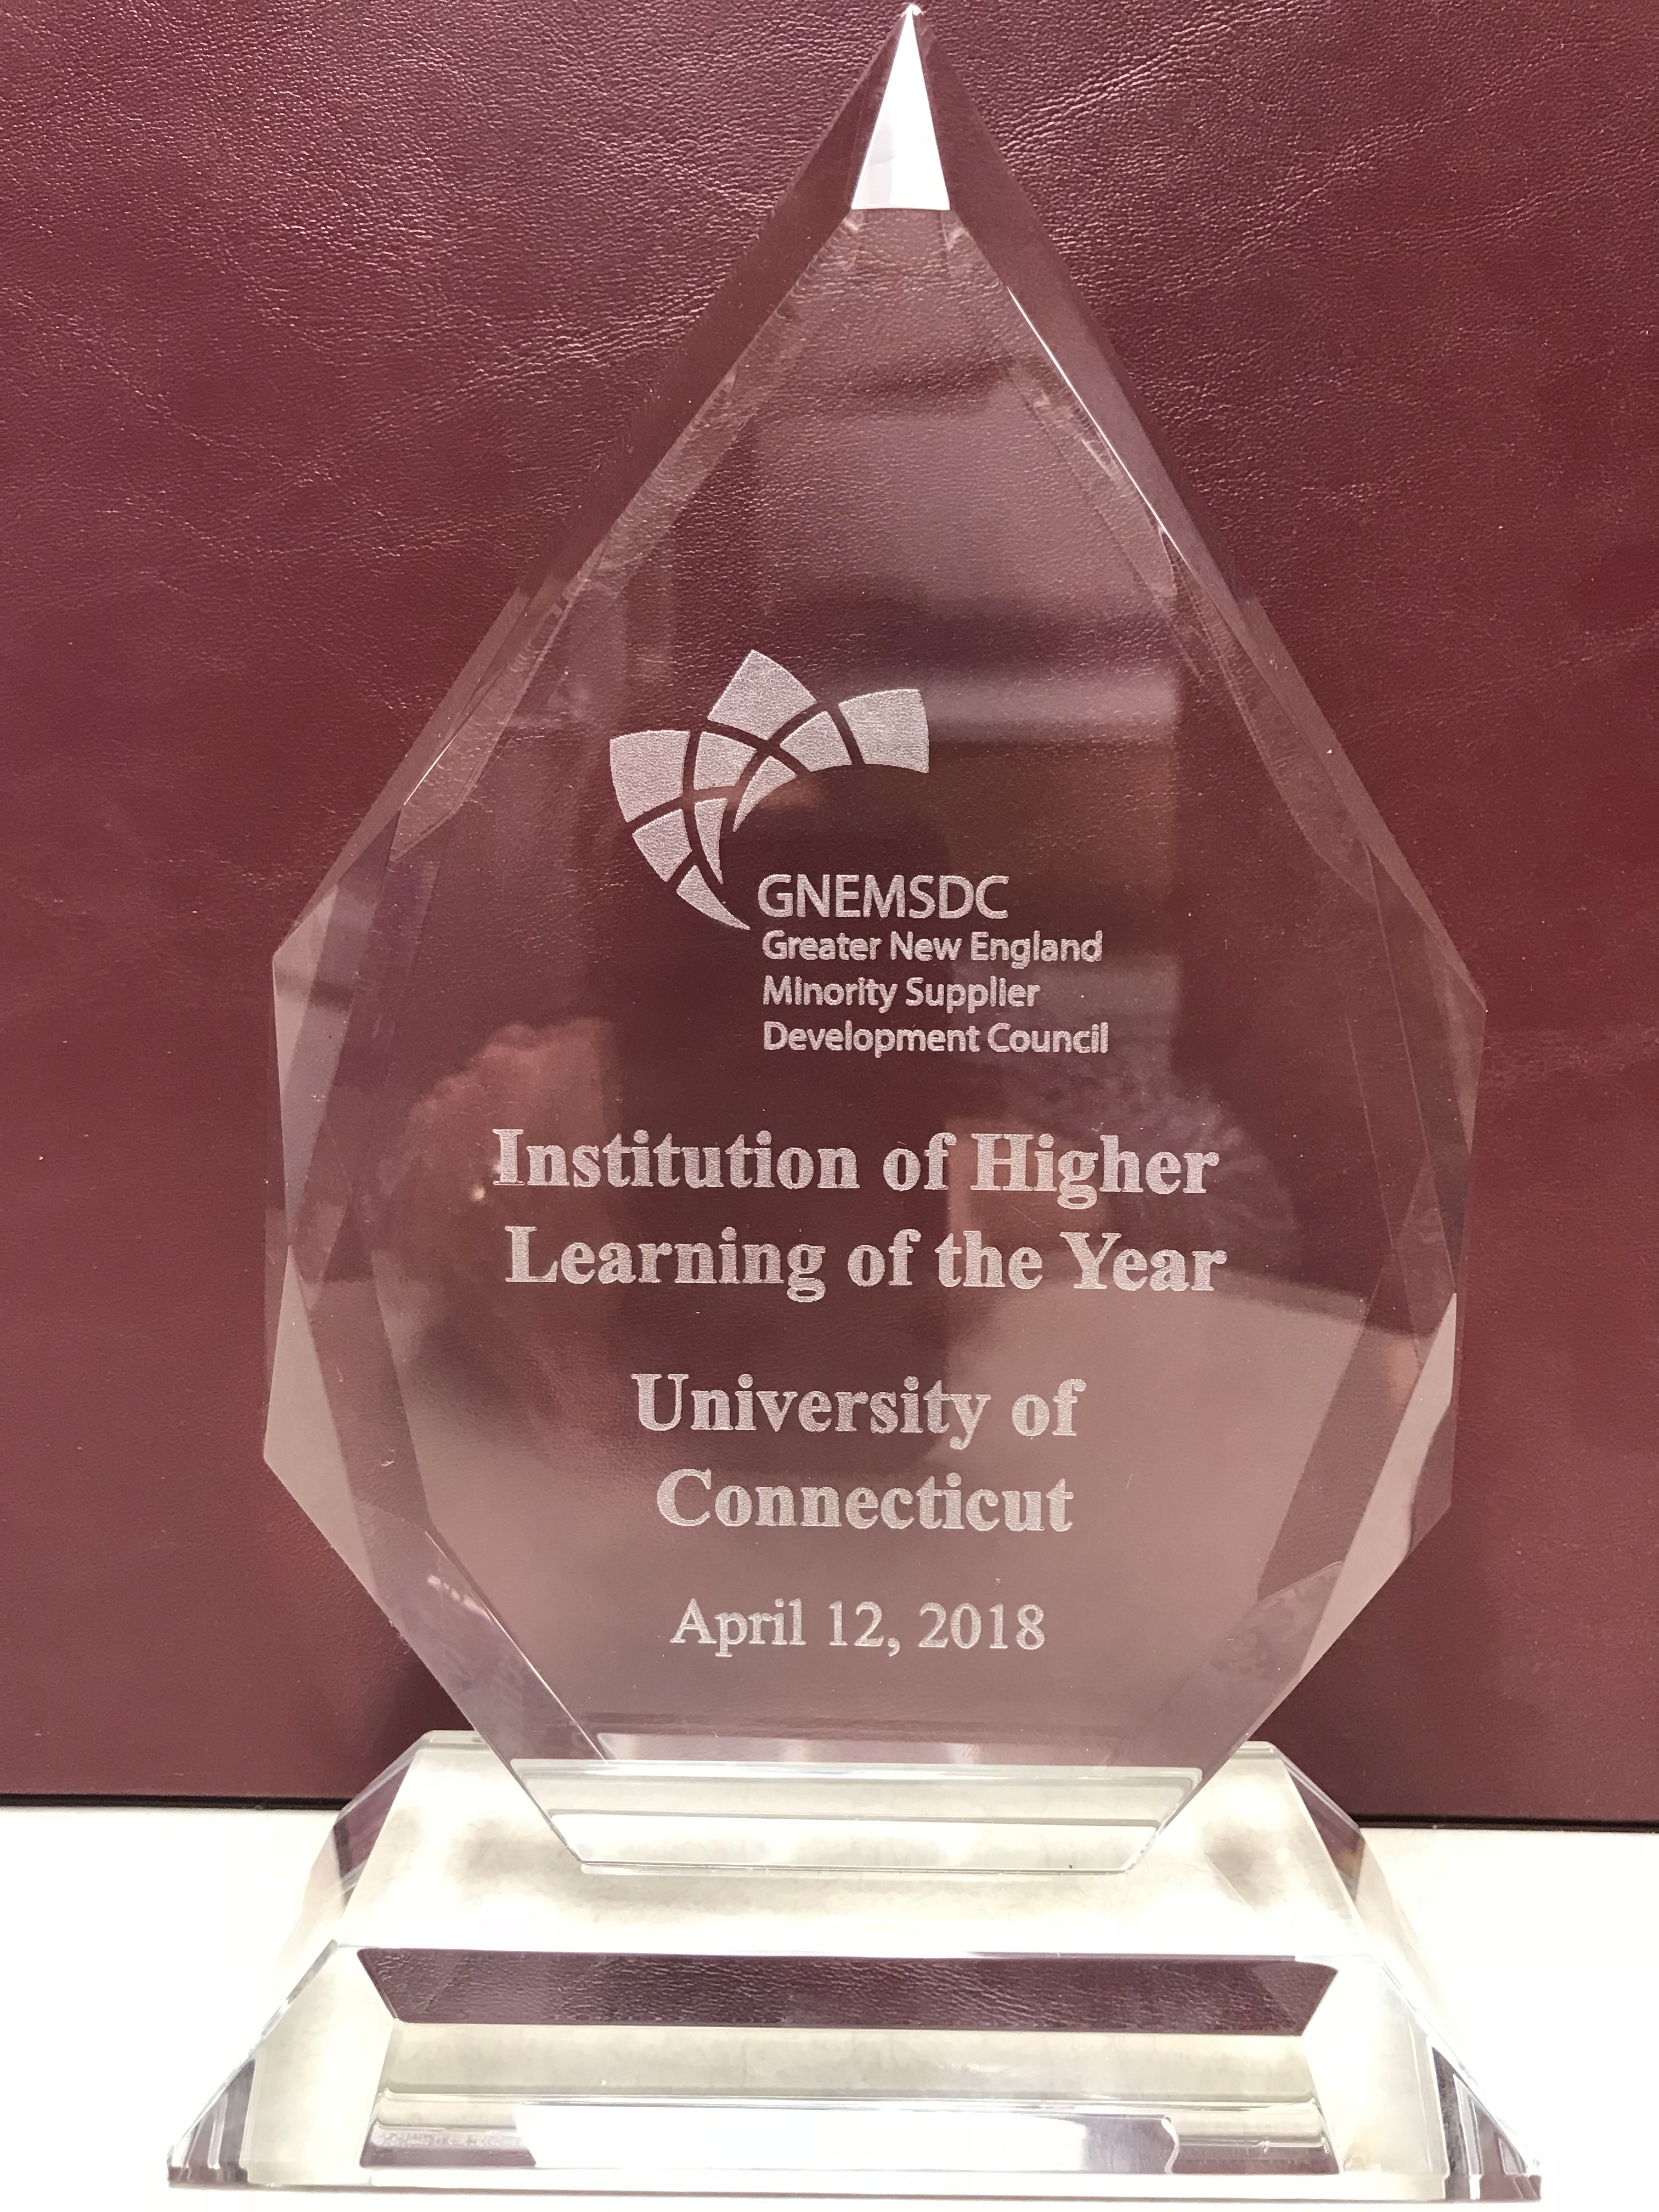 GNEMSDC 2018 Institution of Higher Learning of the Year Award